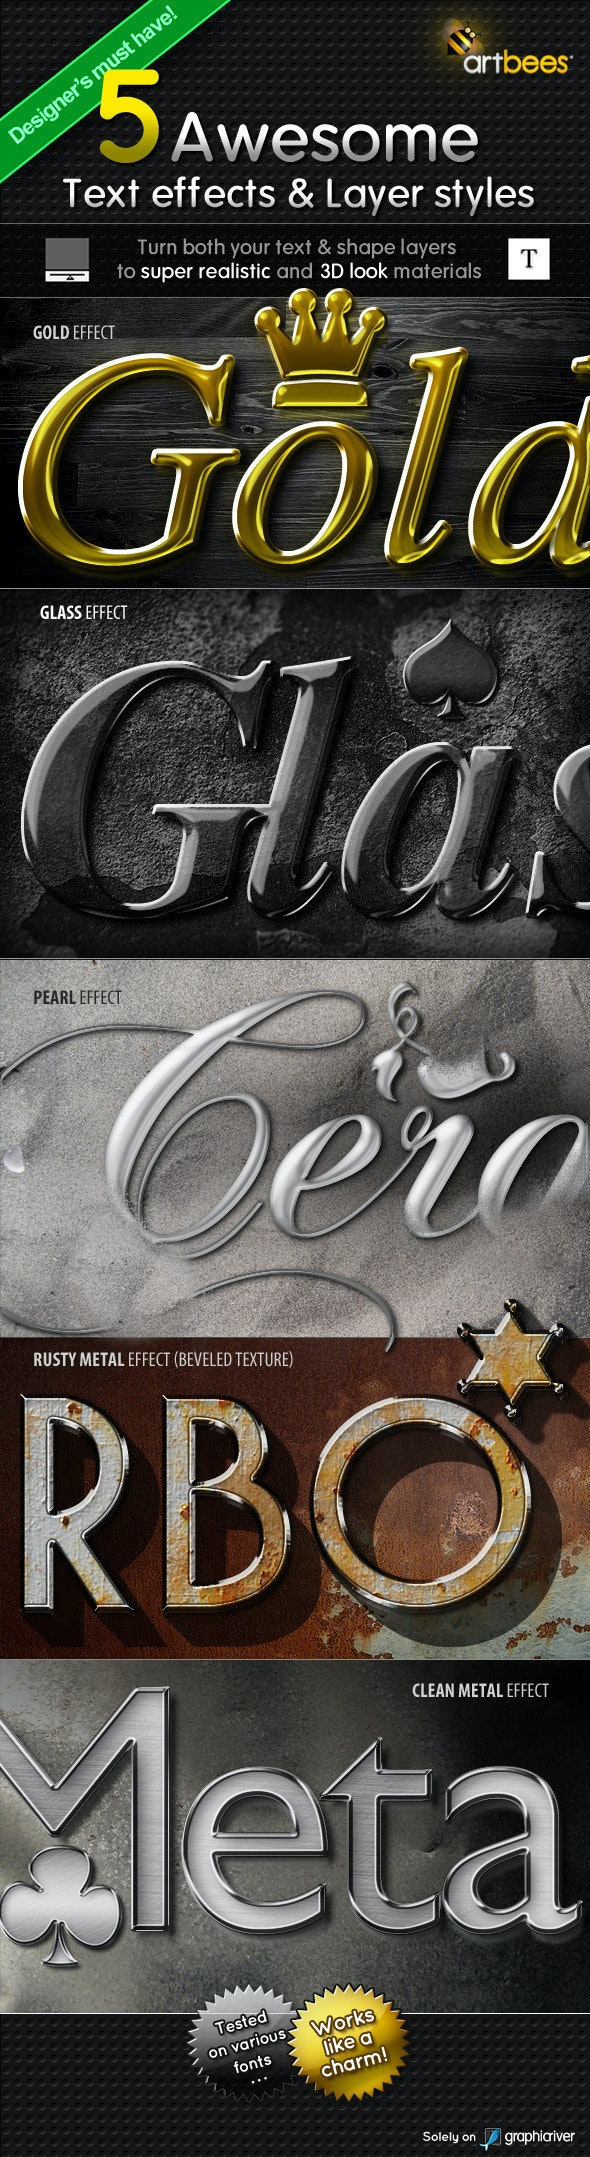 5 Text Effects & Layer Styles - Photoshop Add-ons